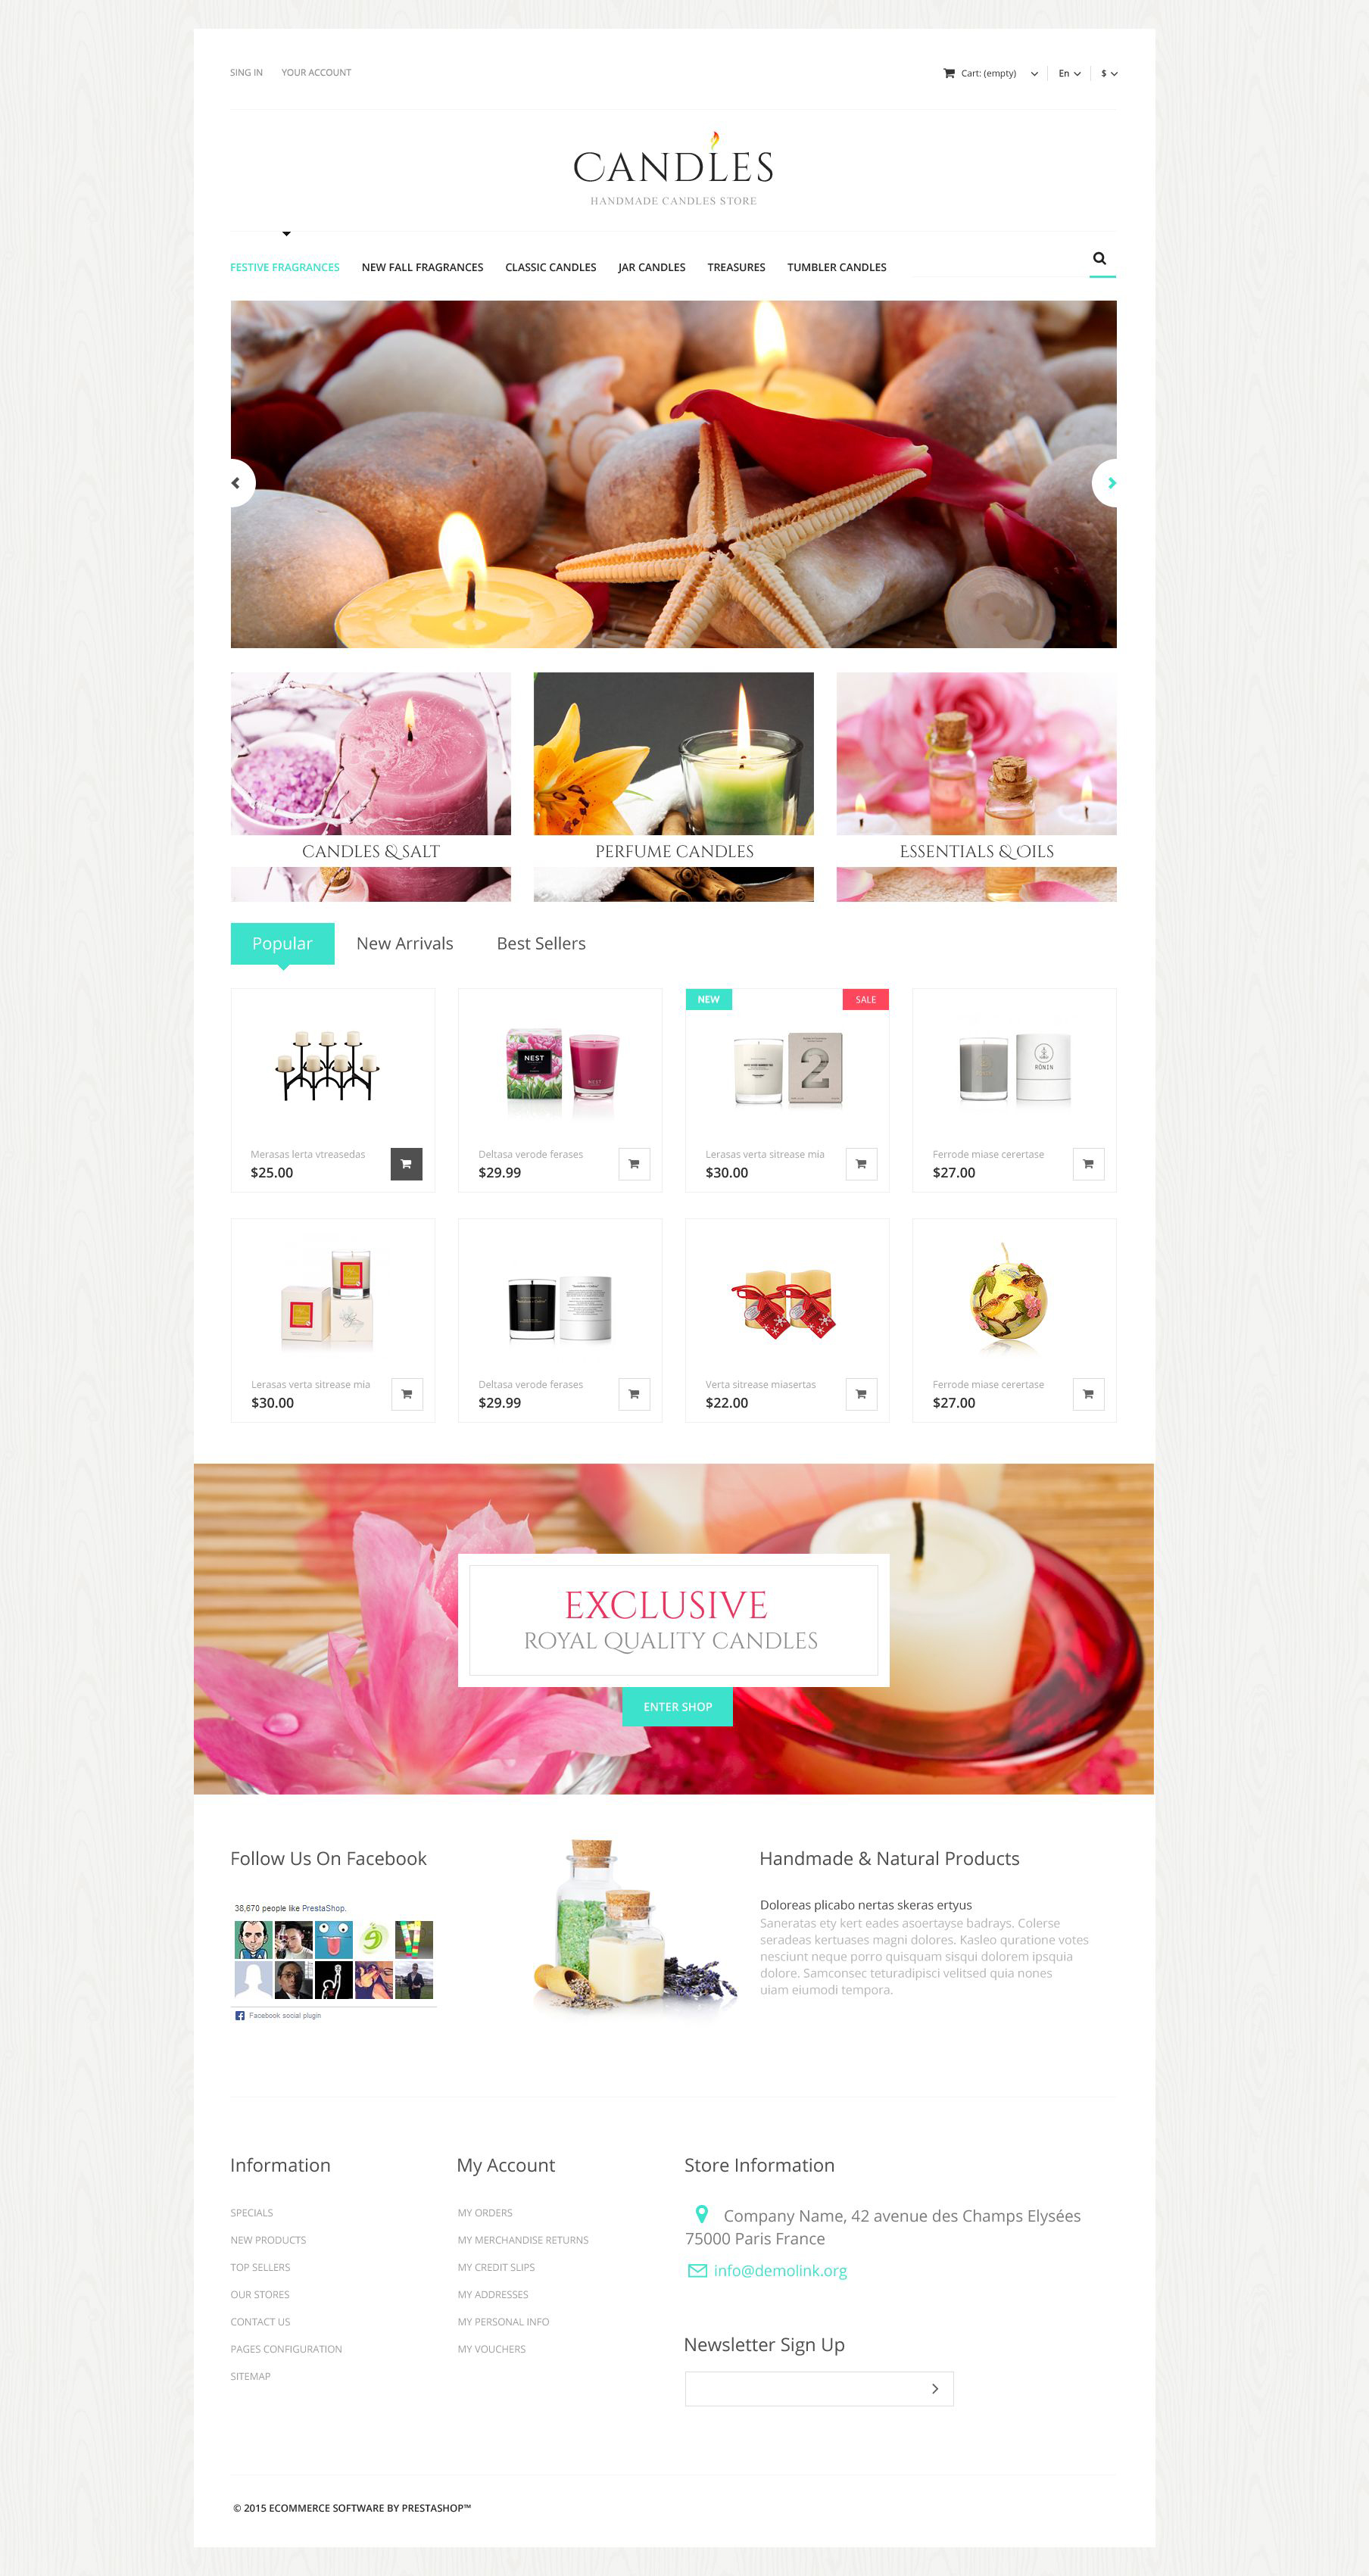 The Handmade Candles Store PrestaShop Design 52957, one of the best PrestaShop themes of its kind (gifts, most popular), also known as Handmade Candles store PrestaShop template, shop PrestaShop template, candle PrestaShop template, holders PrestaShop template, unscented PrestaShop template, floating PrestaShop template, scented PrestaShop template, jar PrestaShop template, rechargeable PrestaShop template, pillar PrestaShop template, soy PrestaShop template, taper PrestaShop template, tea PrestaShop template, light PrestaShop template, unique  votive and related with Handmade Candles store, shop, candle, holders, unscented, floating, scented, jar, rechargeable, pillar, soy, taper, tea, light, unique  votive, etc.